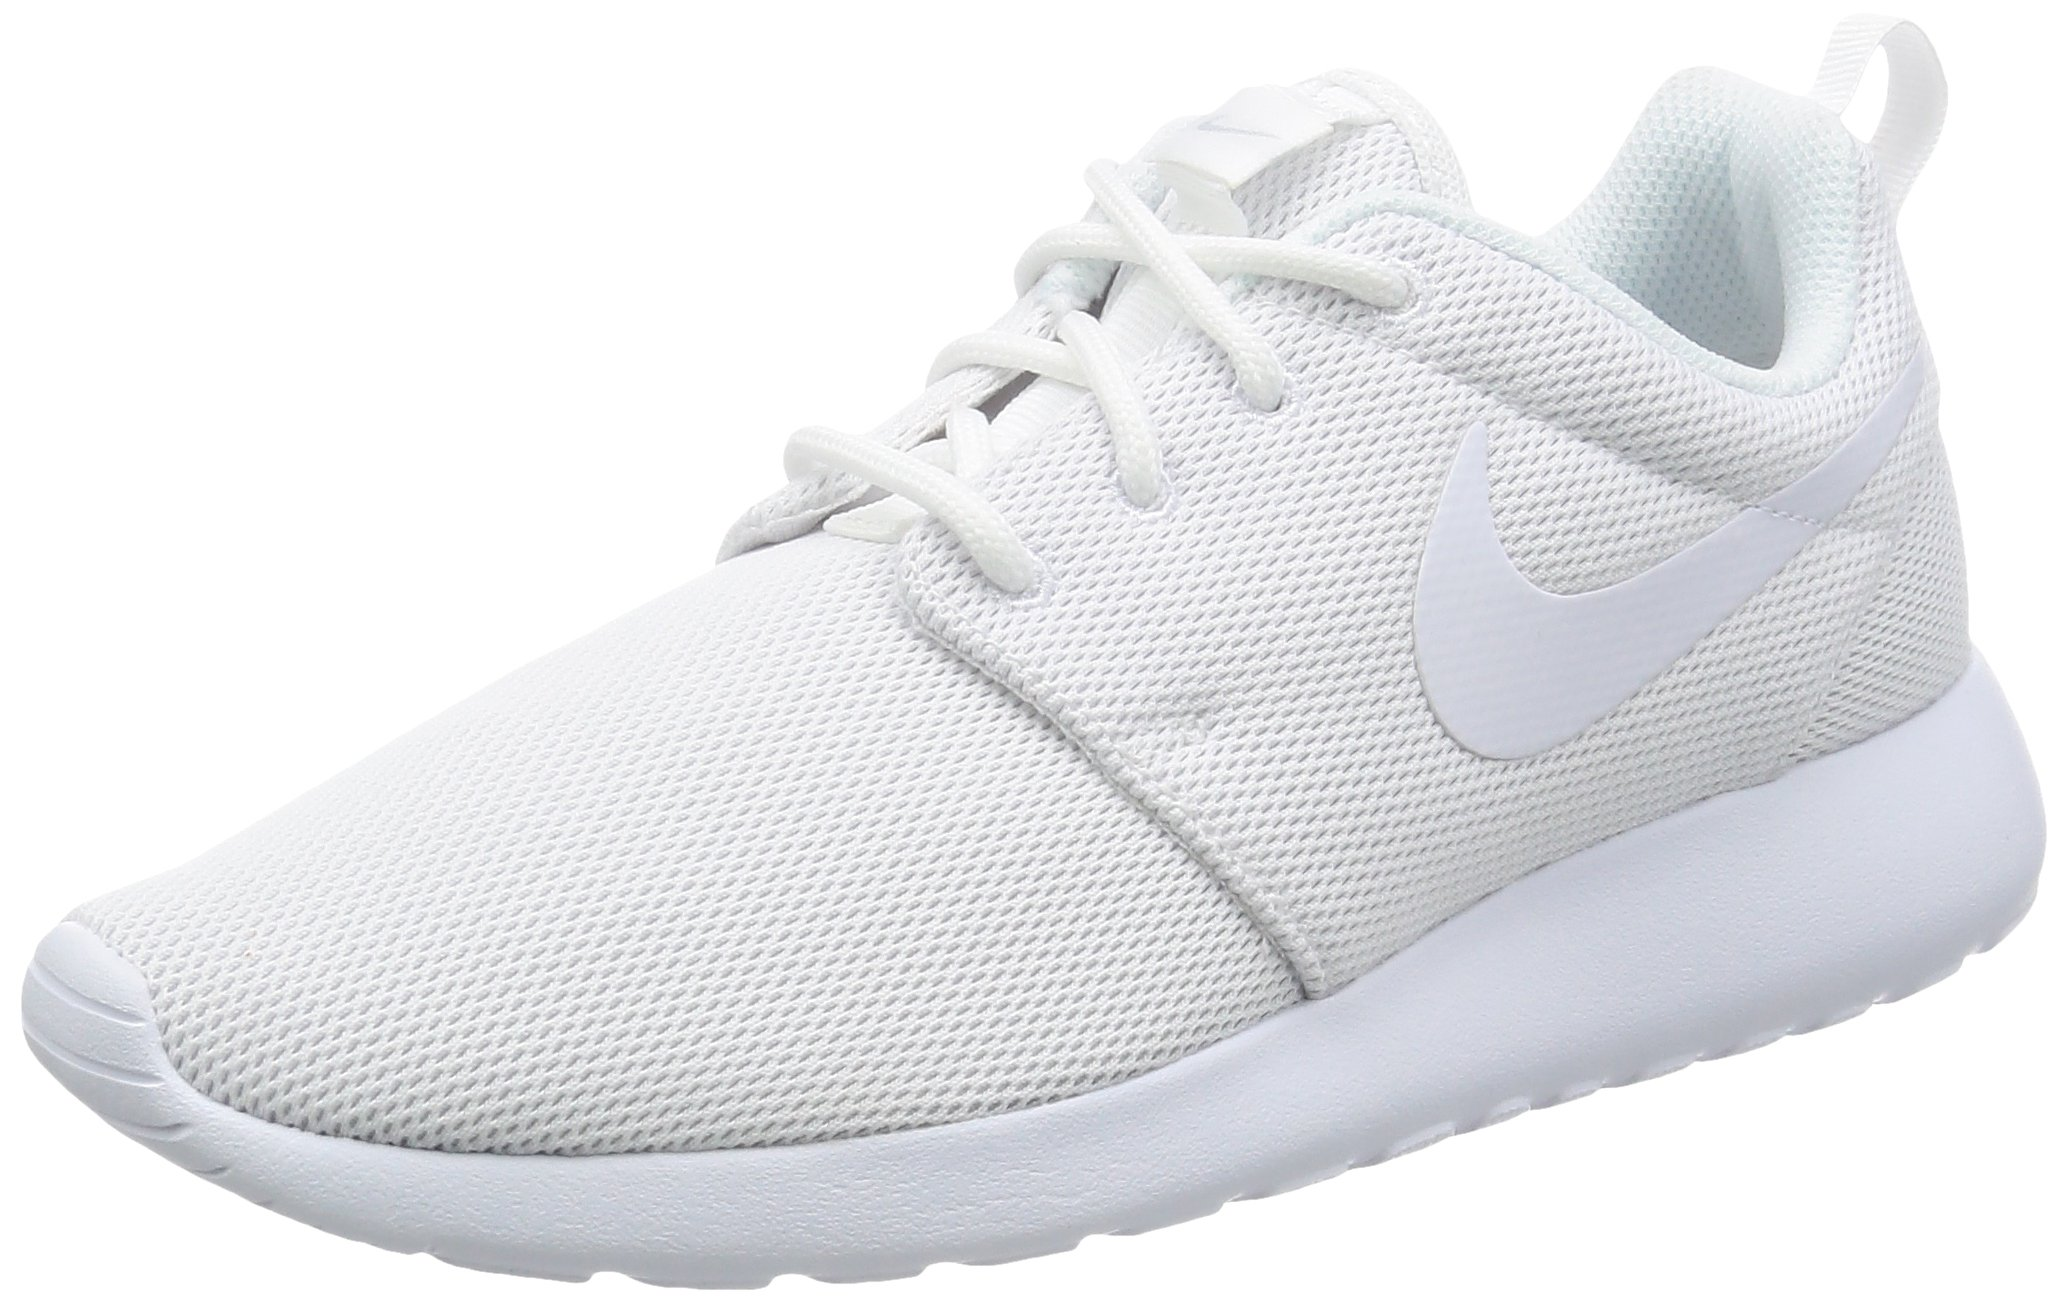 separation shoes c3445 25f38 Galleon - Nike Womens Roshe One White White Pure Platinum Running Shoe 8.5  Women US